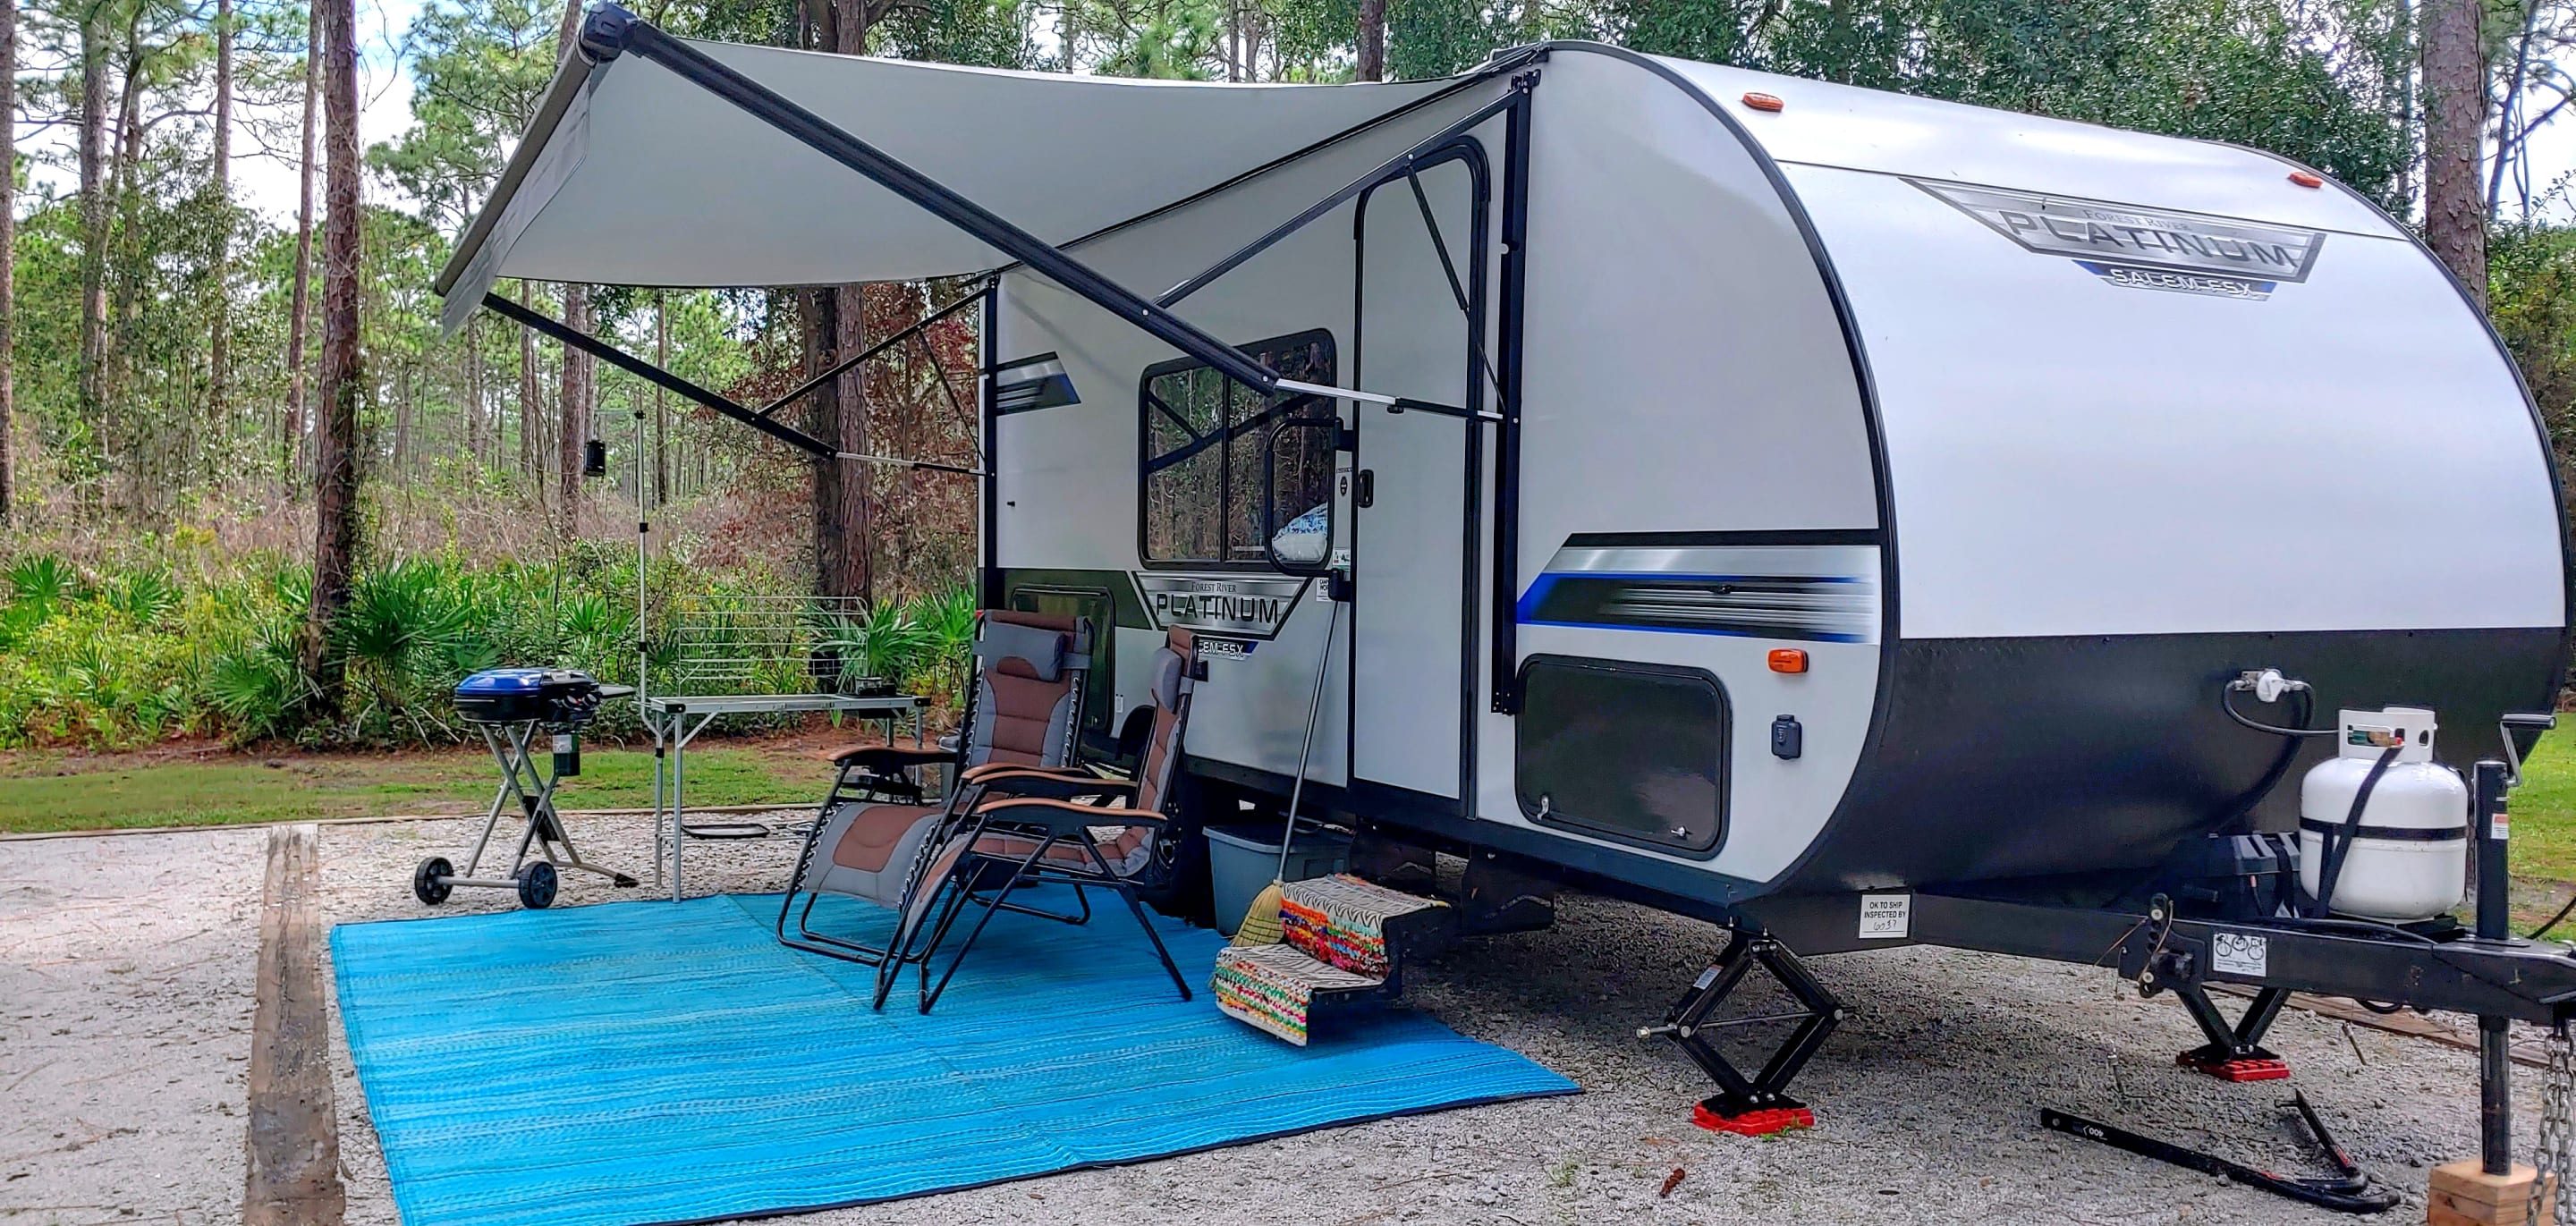 Outdoor setup included in daily rental fee:  outdoor rug, 2 gravity chairs, 2 camping chairs, broom, camping lights.. Forest River Salem 2020